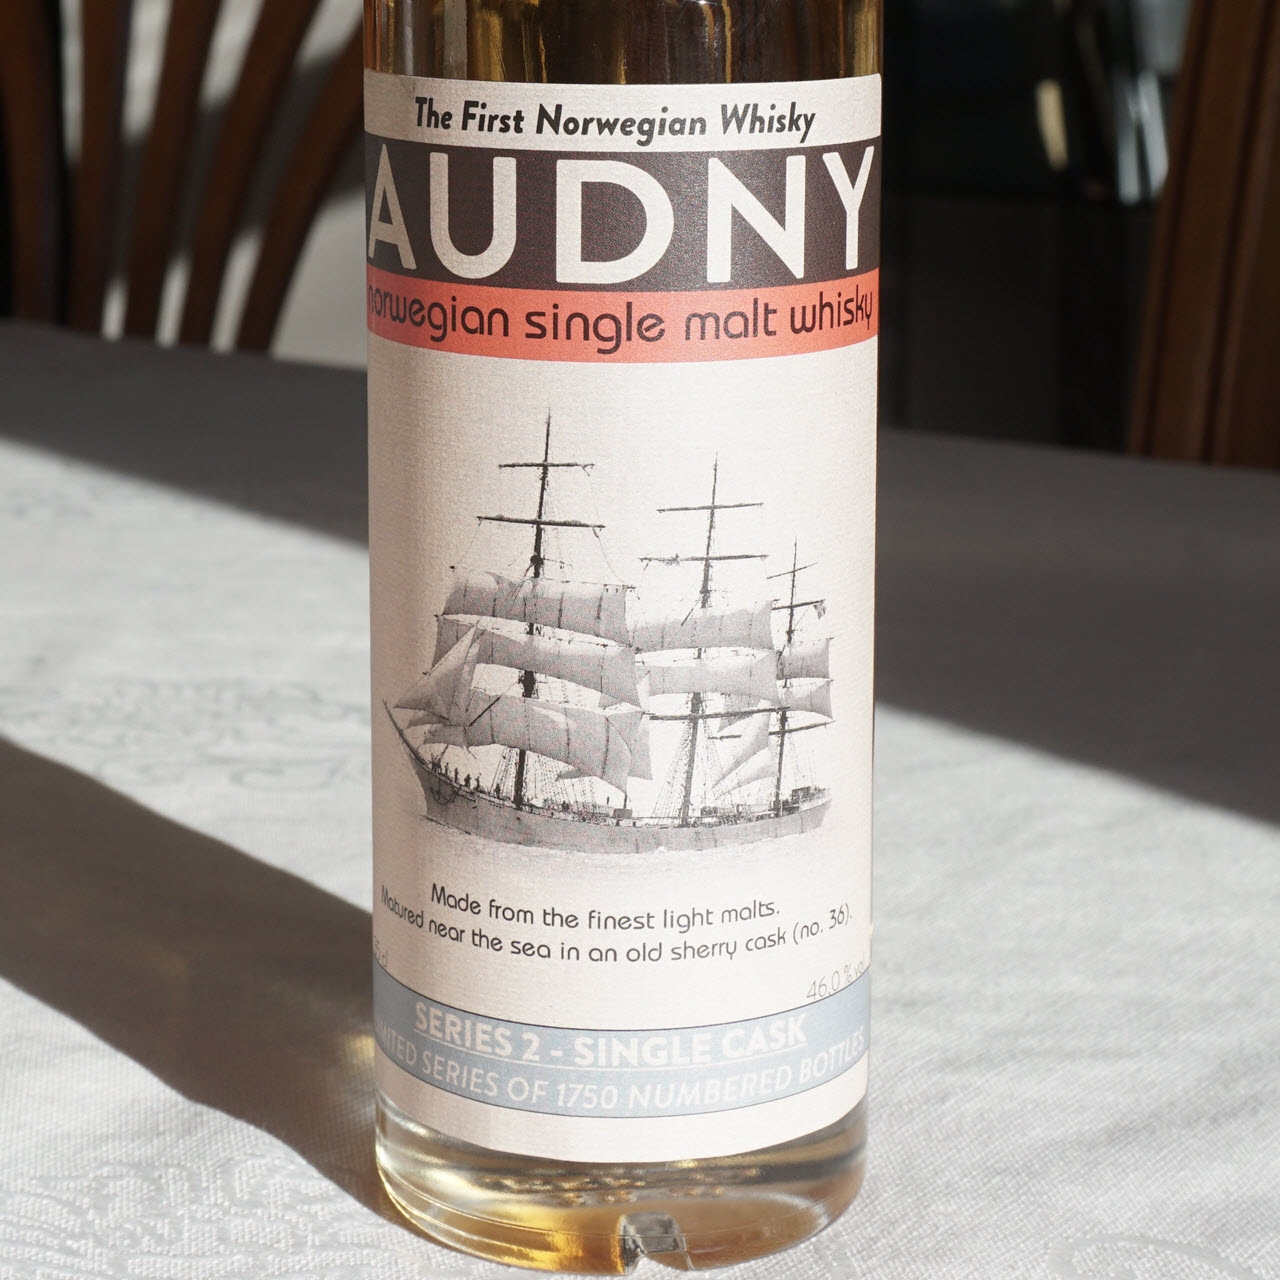 Audny Series 2 Single Cask